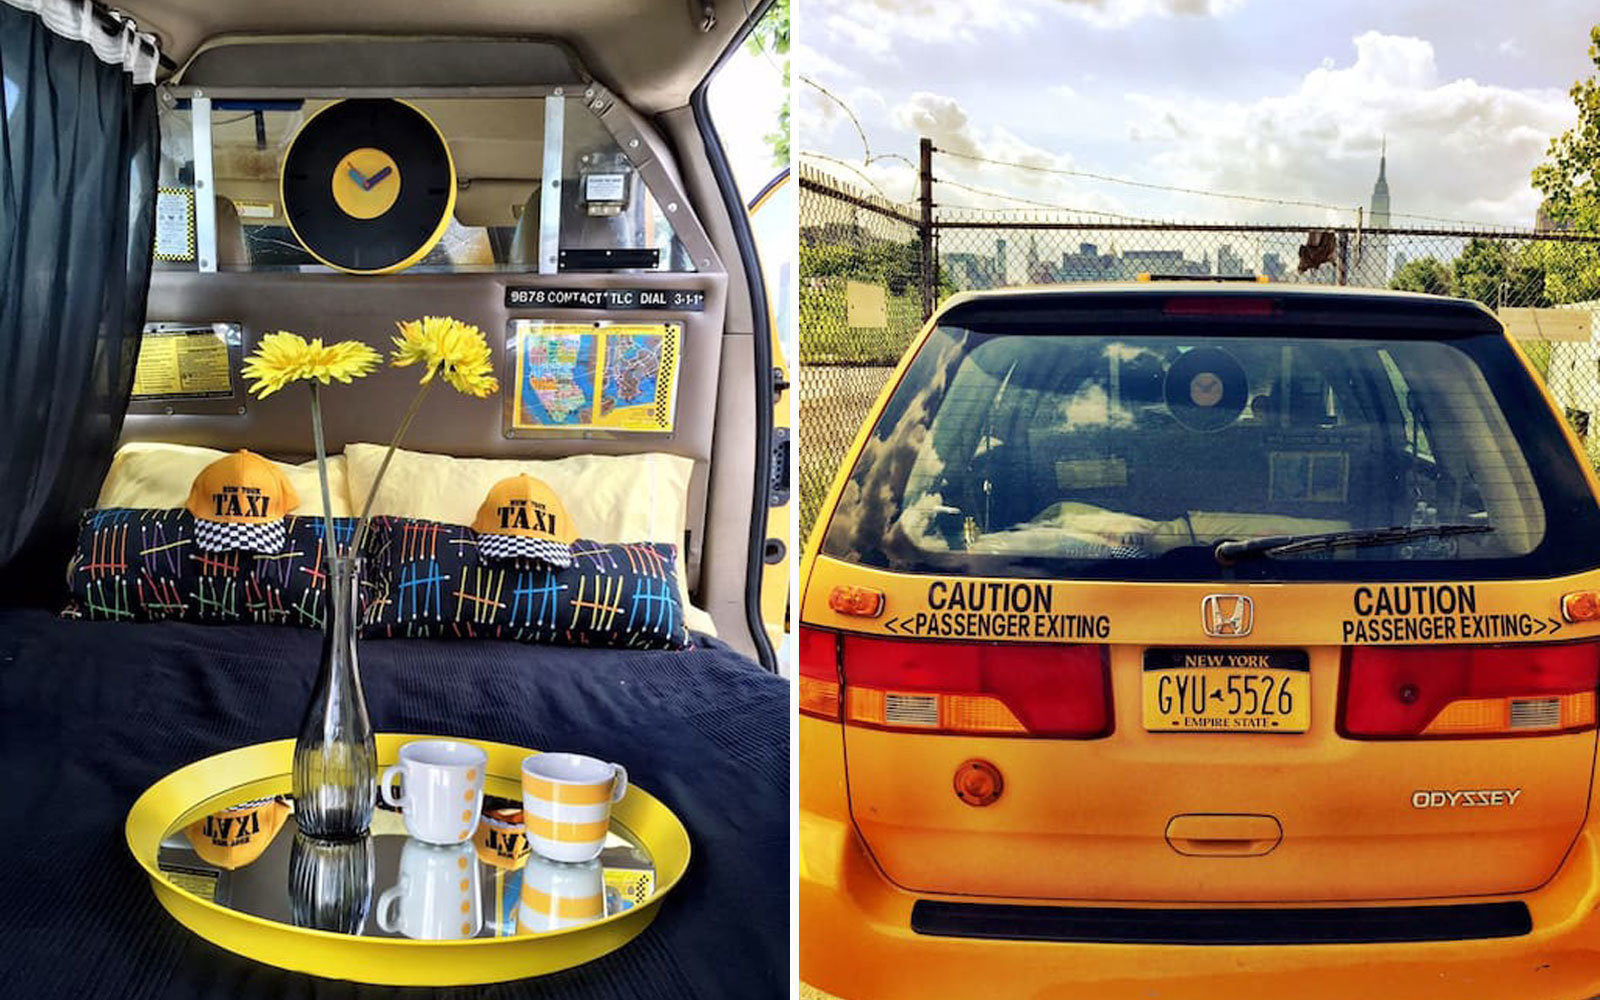 New York City taxi for $39/night